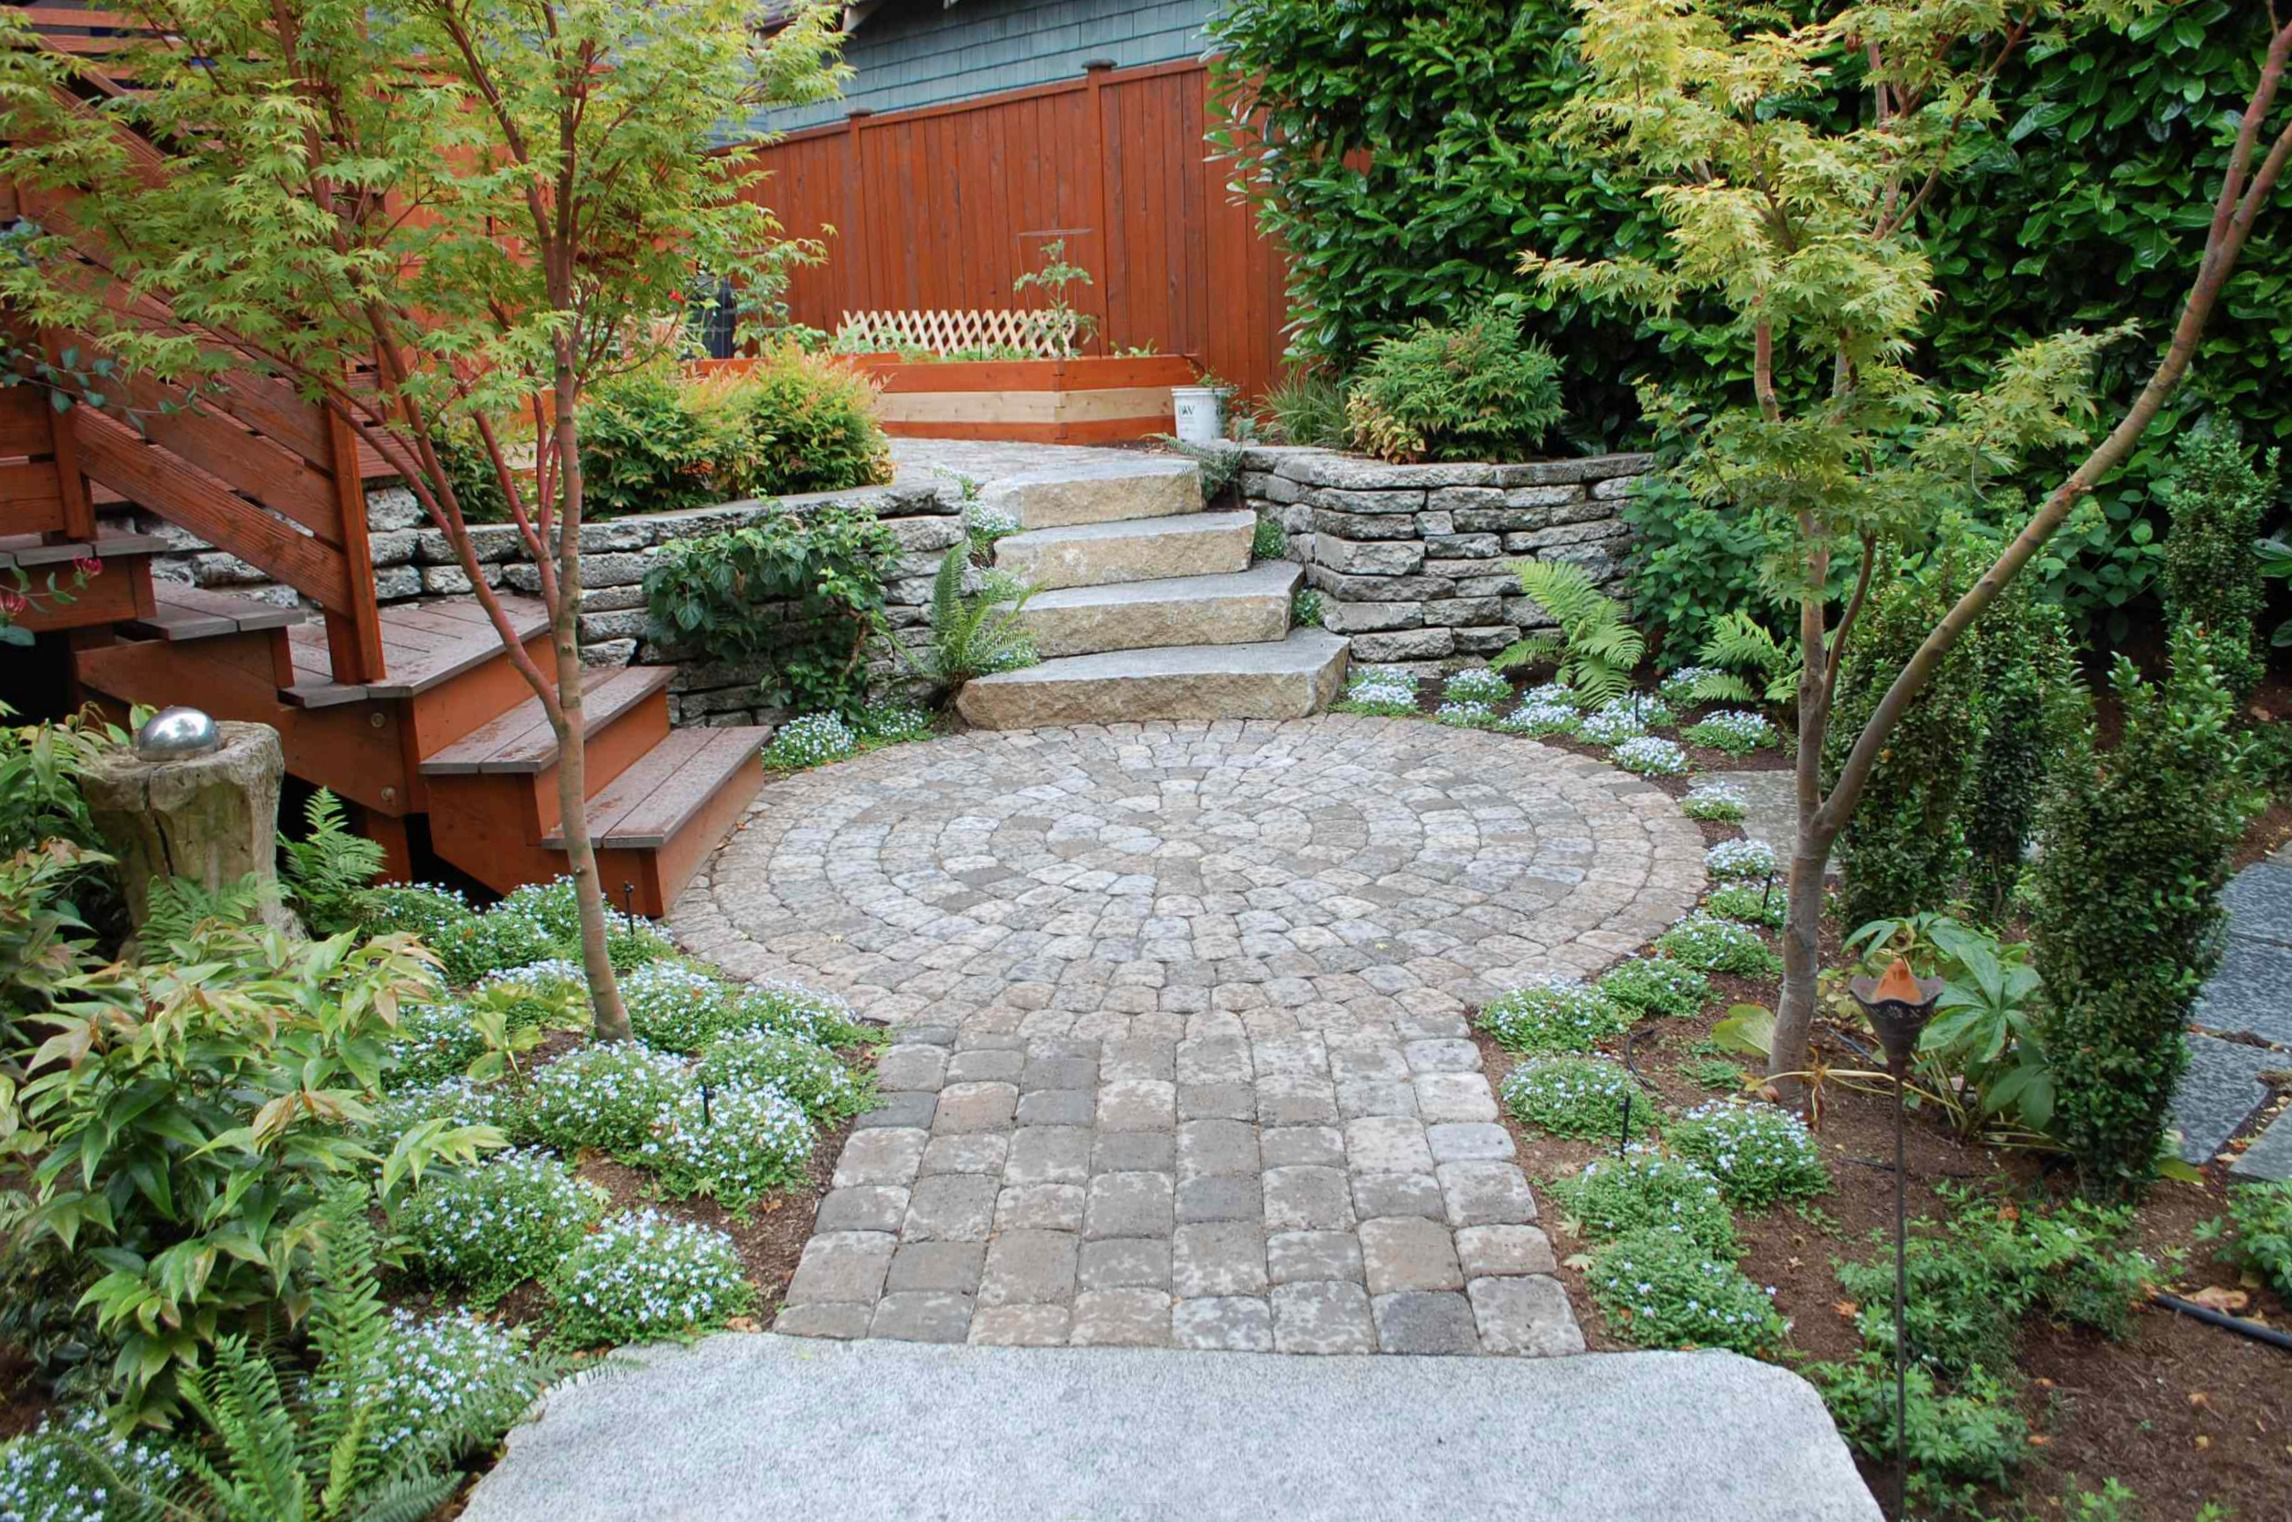 25 Perfect Patio Paver Design Ideas on Small Brick Patio Ideas id=95745